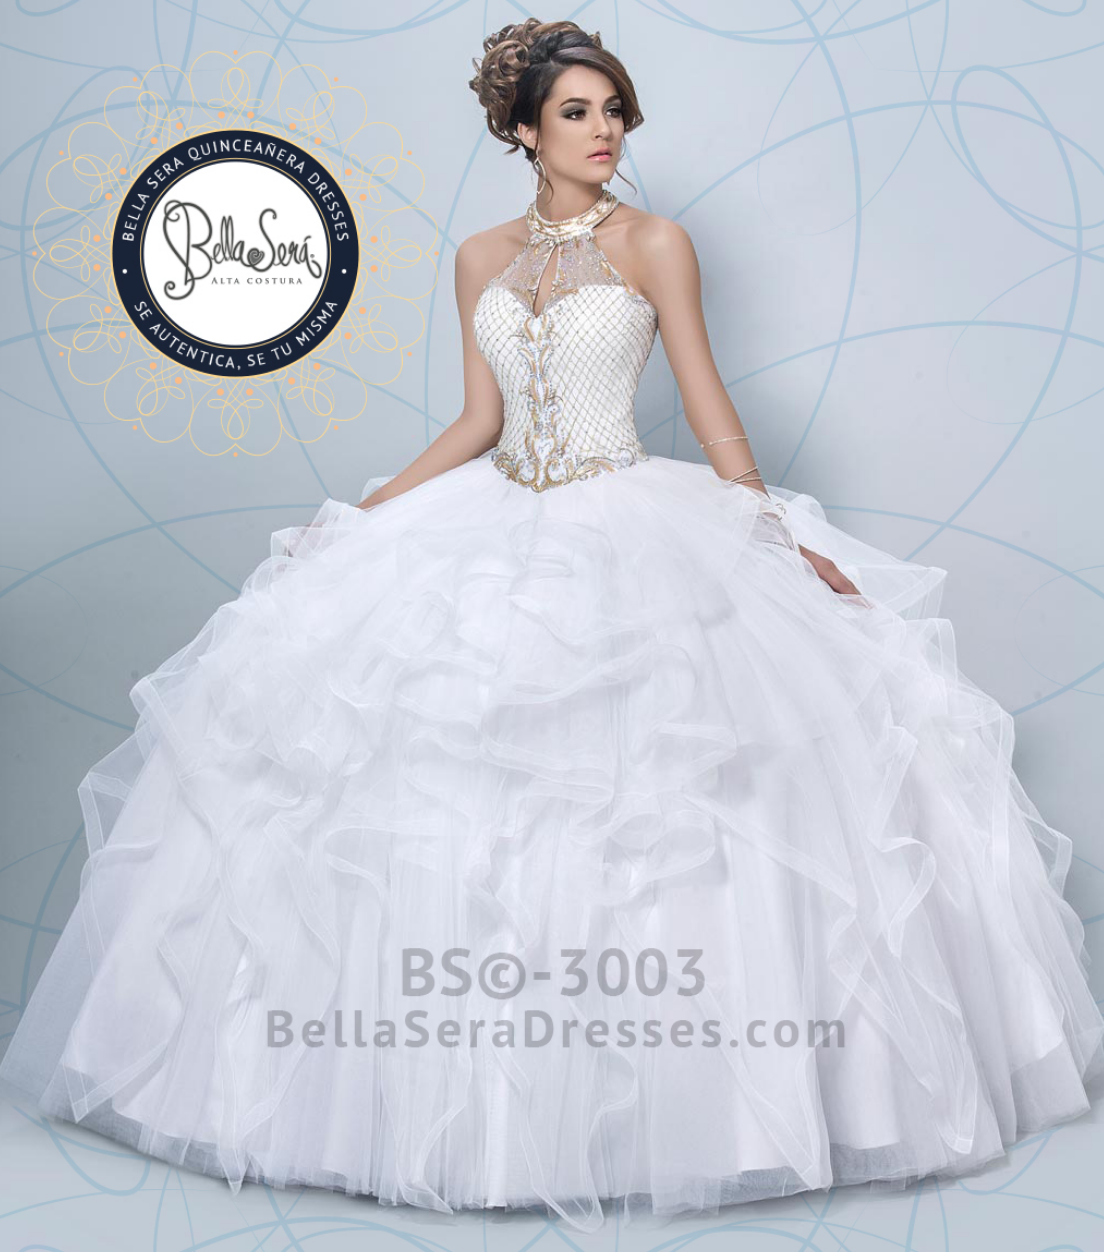 Marus Boutique Quinceanera And Prom Dresses Round Rock Tx